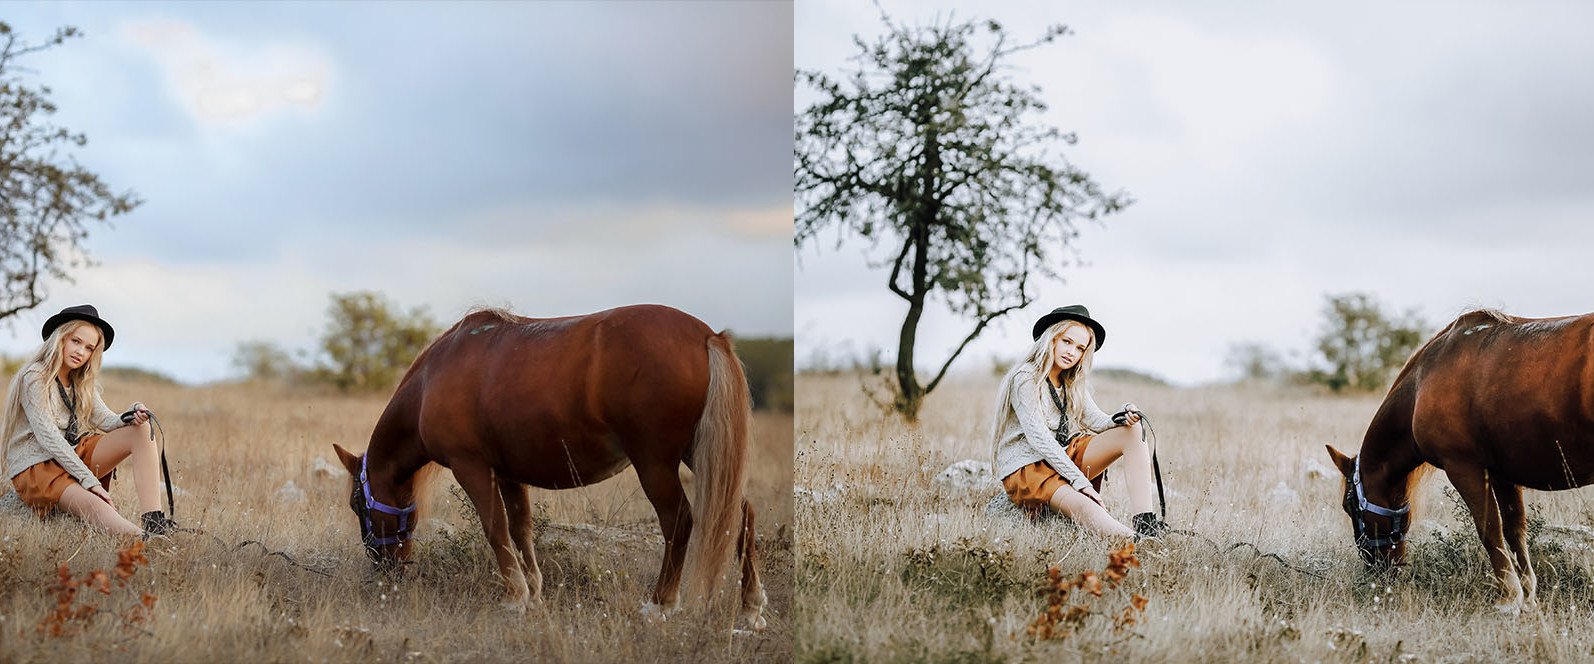 12 x Lightroom Presets, Country Living Presets, Portrait Presets, Green Shades Presets, Outdoor - 3 Country Living -